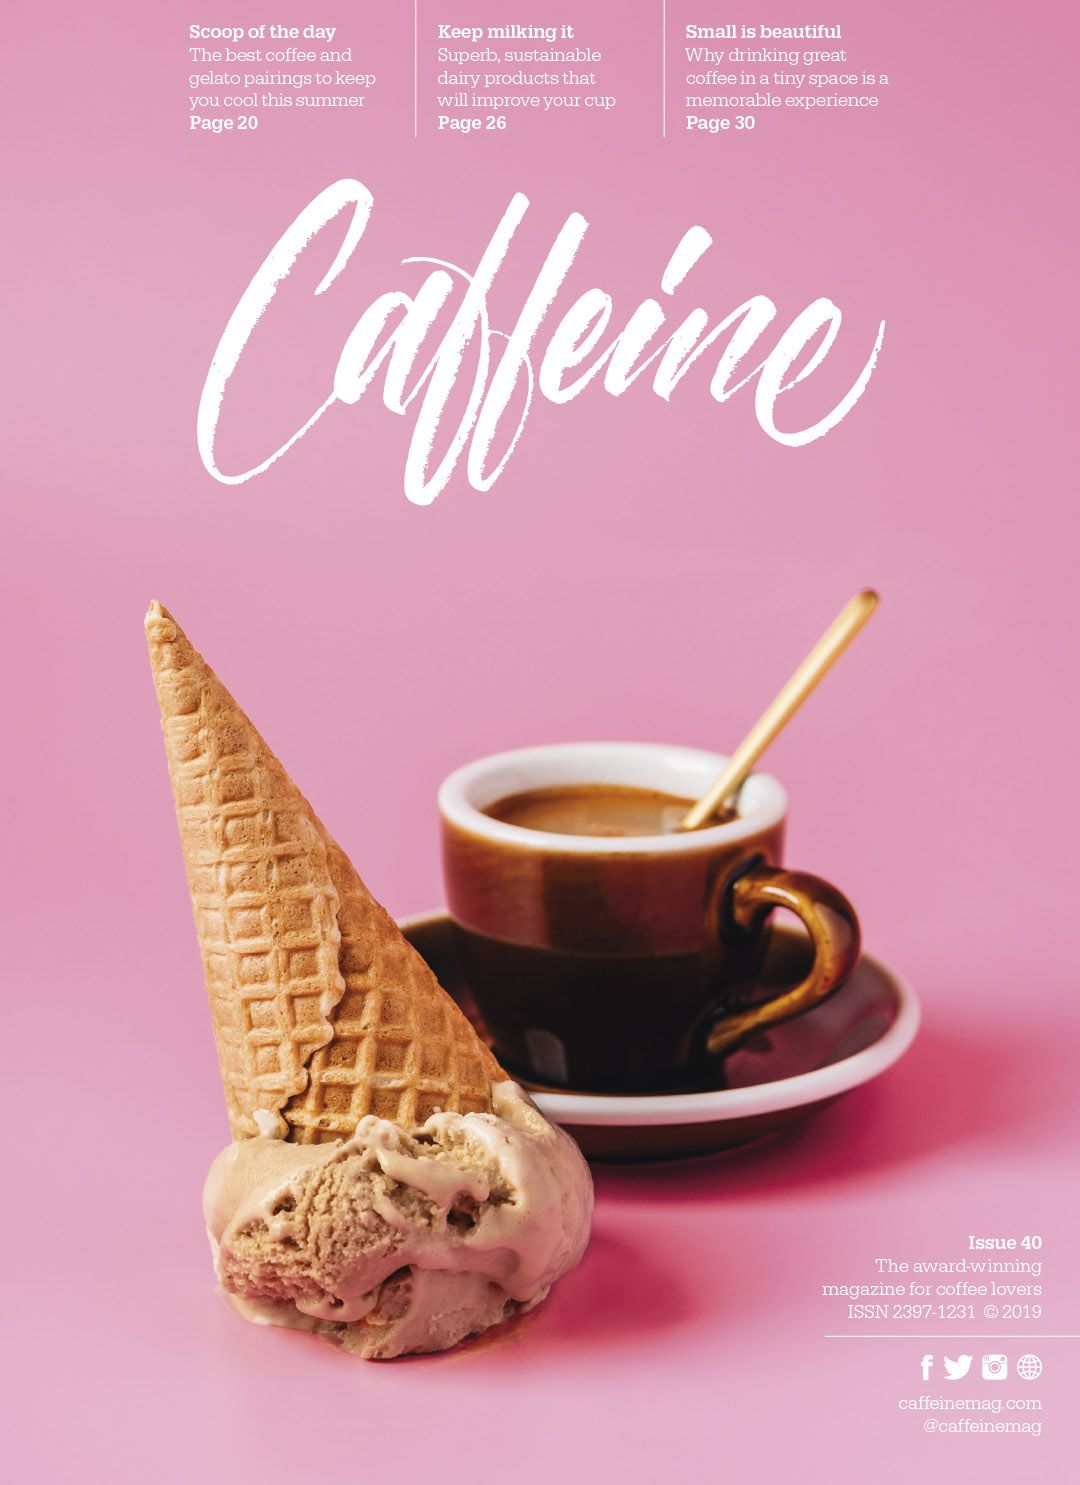 Caffeine is a magazine dedicated to all things coffee